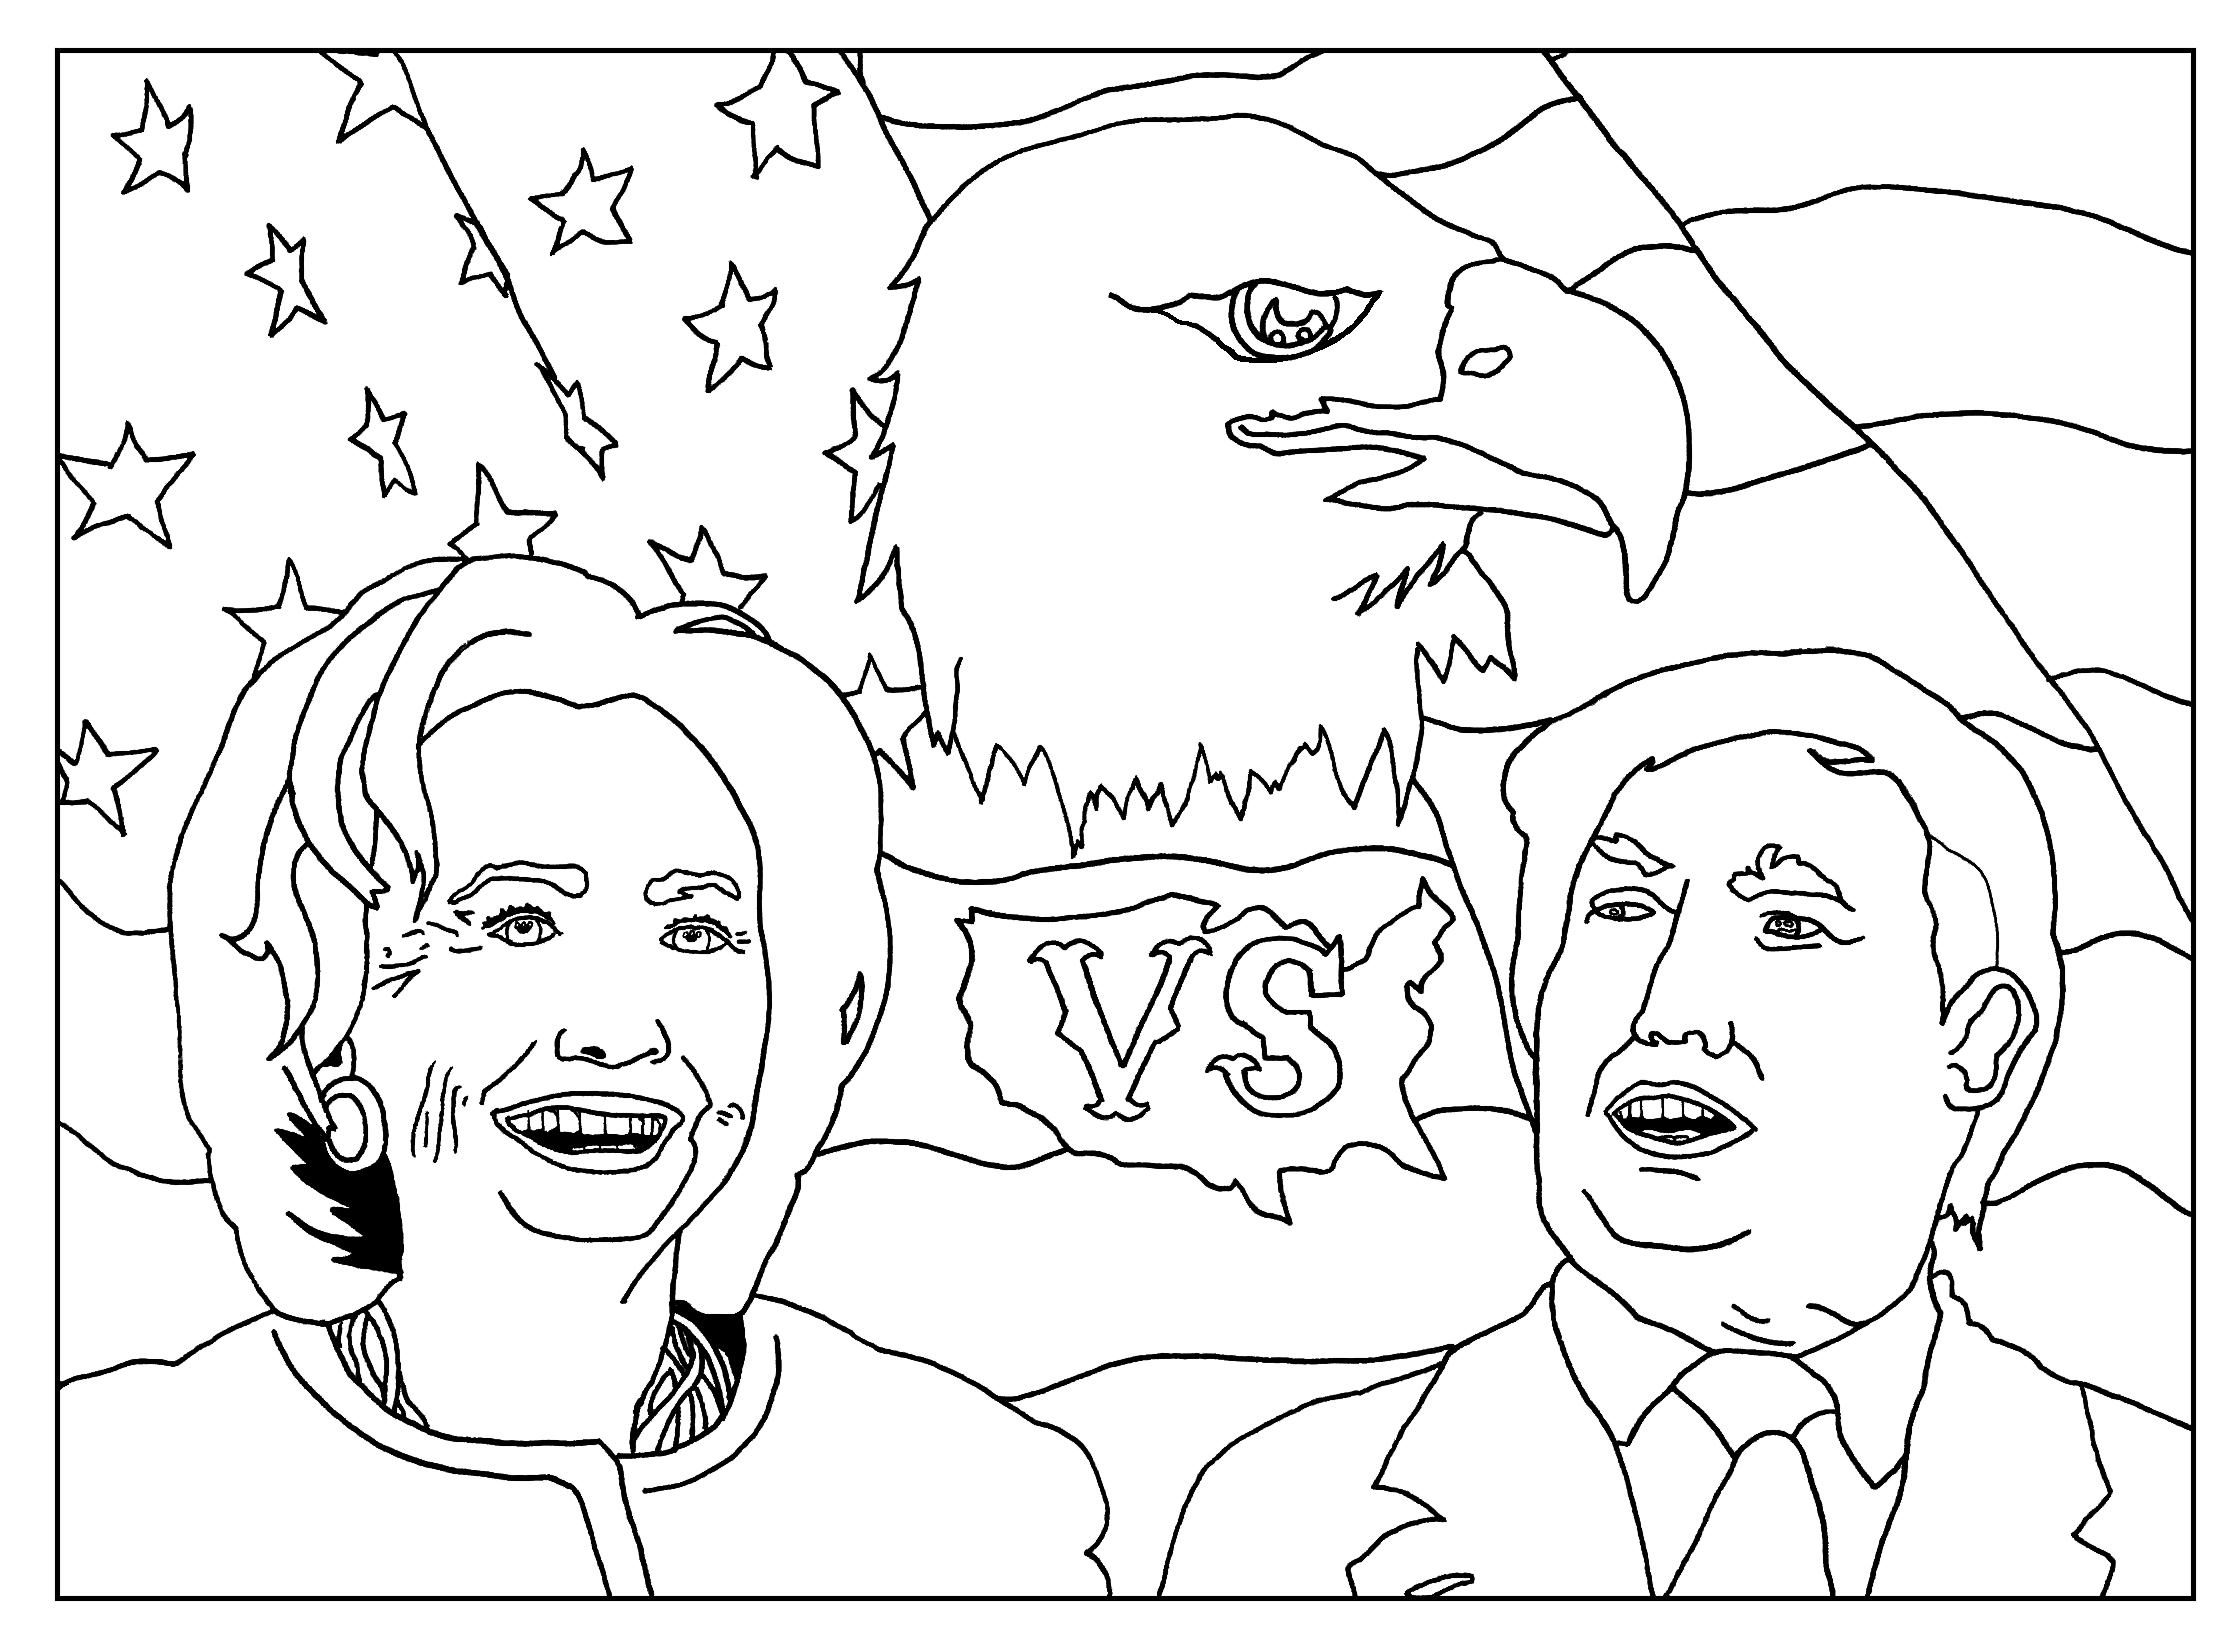 Coloring Page Inspired by the 2016 Us Presidential Elections Gallery Of Hillary Clinton Coloring Pages Collection to Print